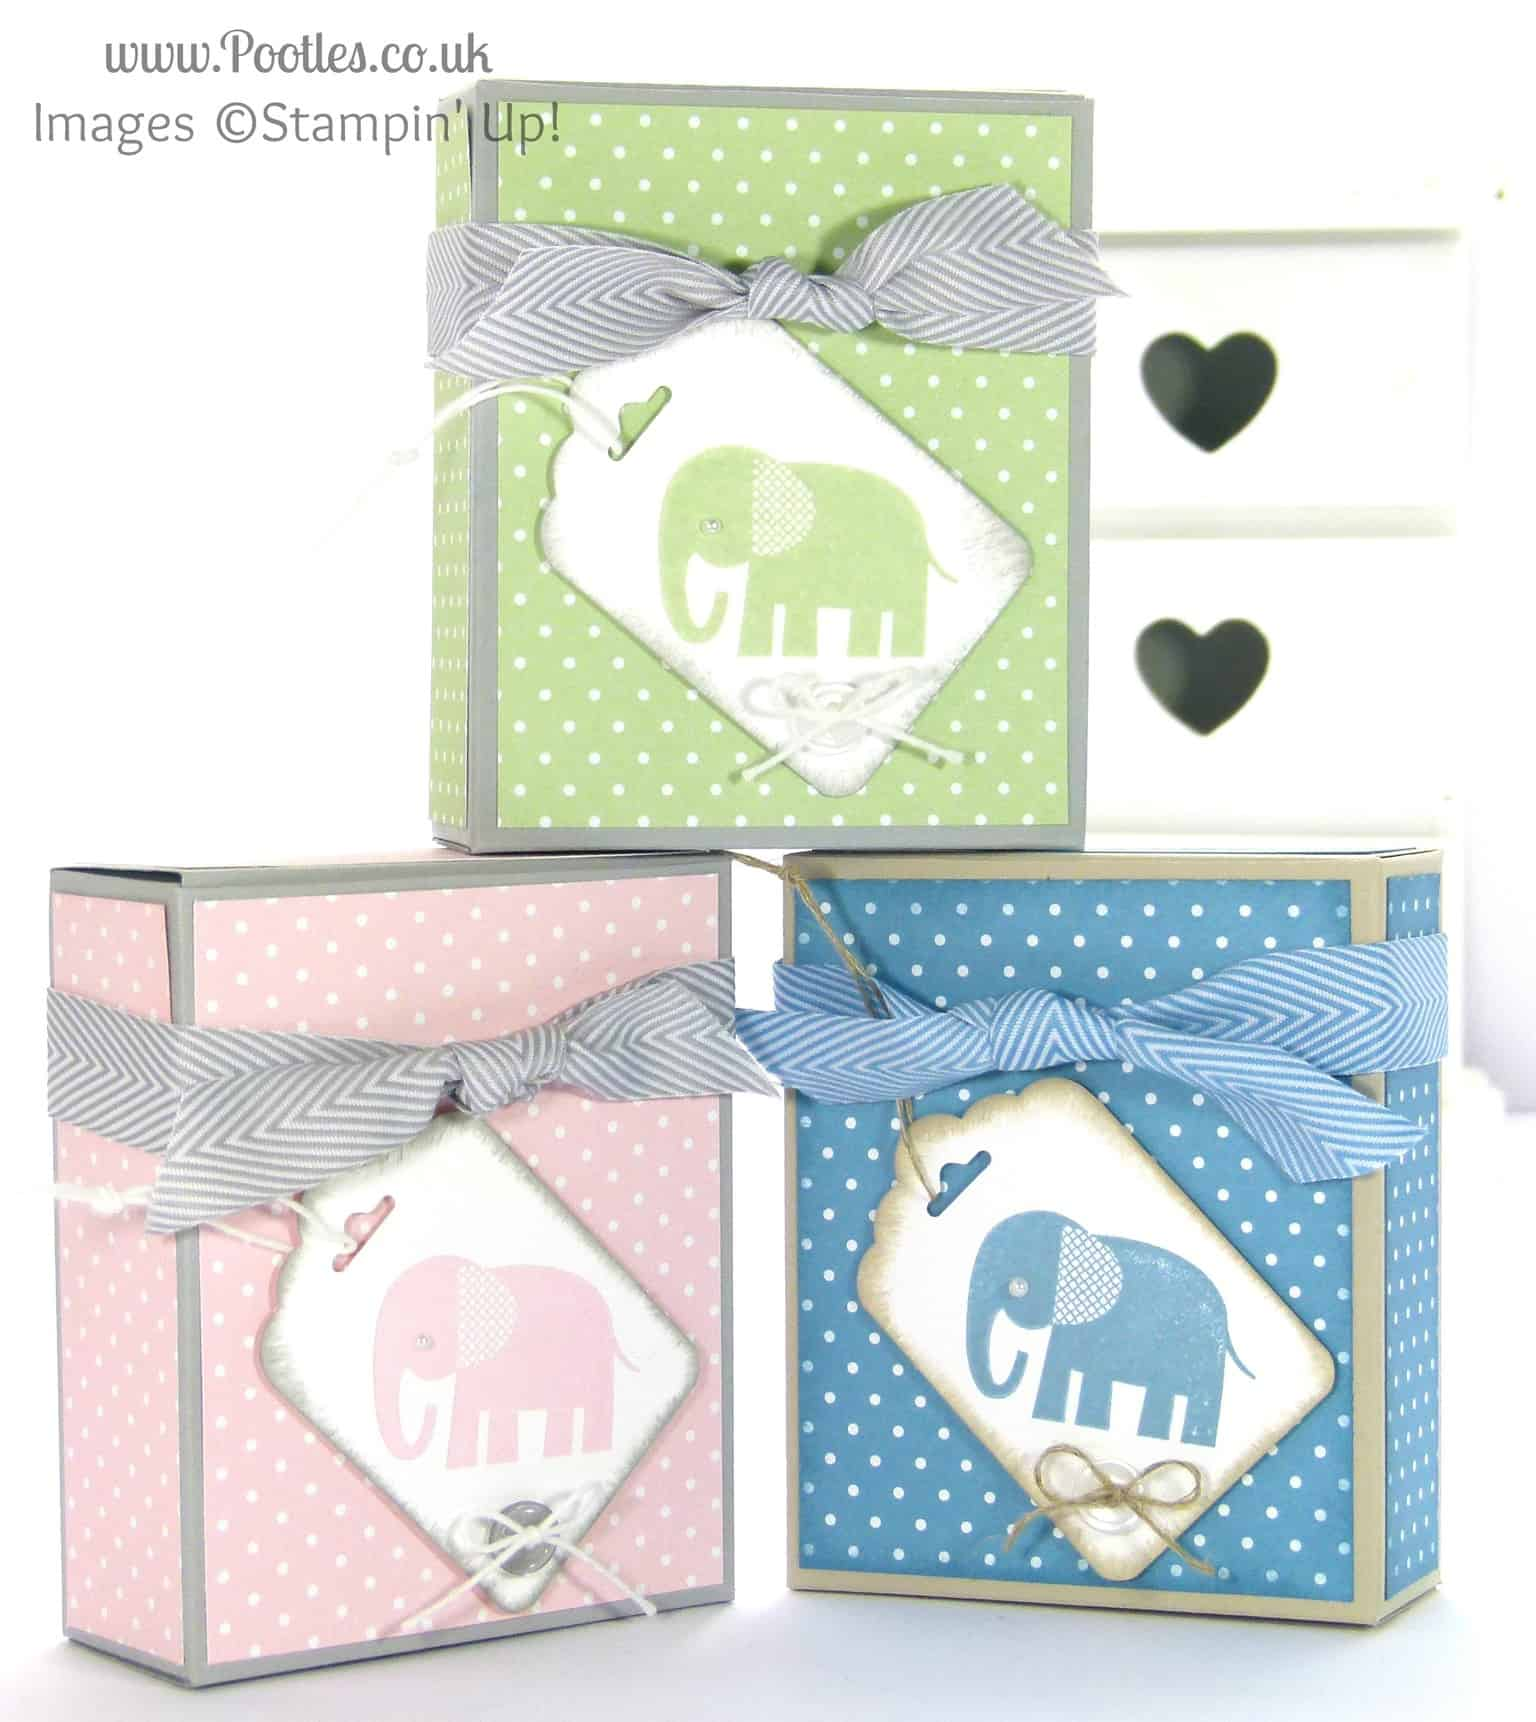 Stampin' Up! UK Independent Demonstrator Pootles - Adorable Box for Baby Bibs and Gifts